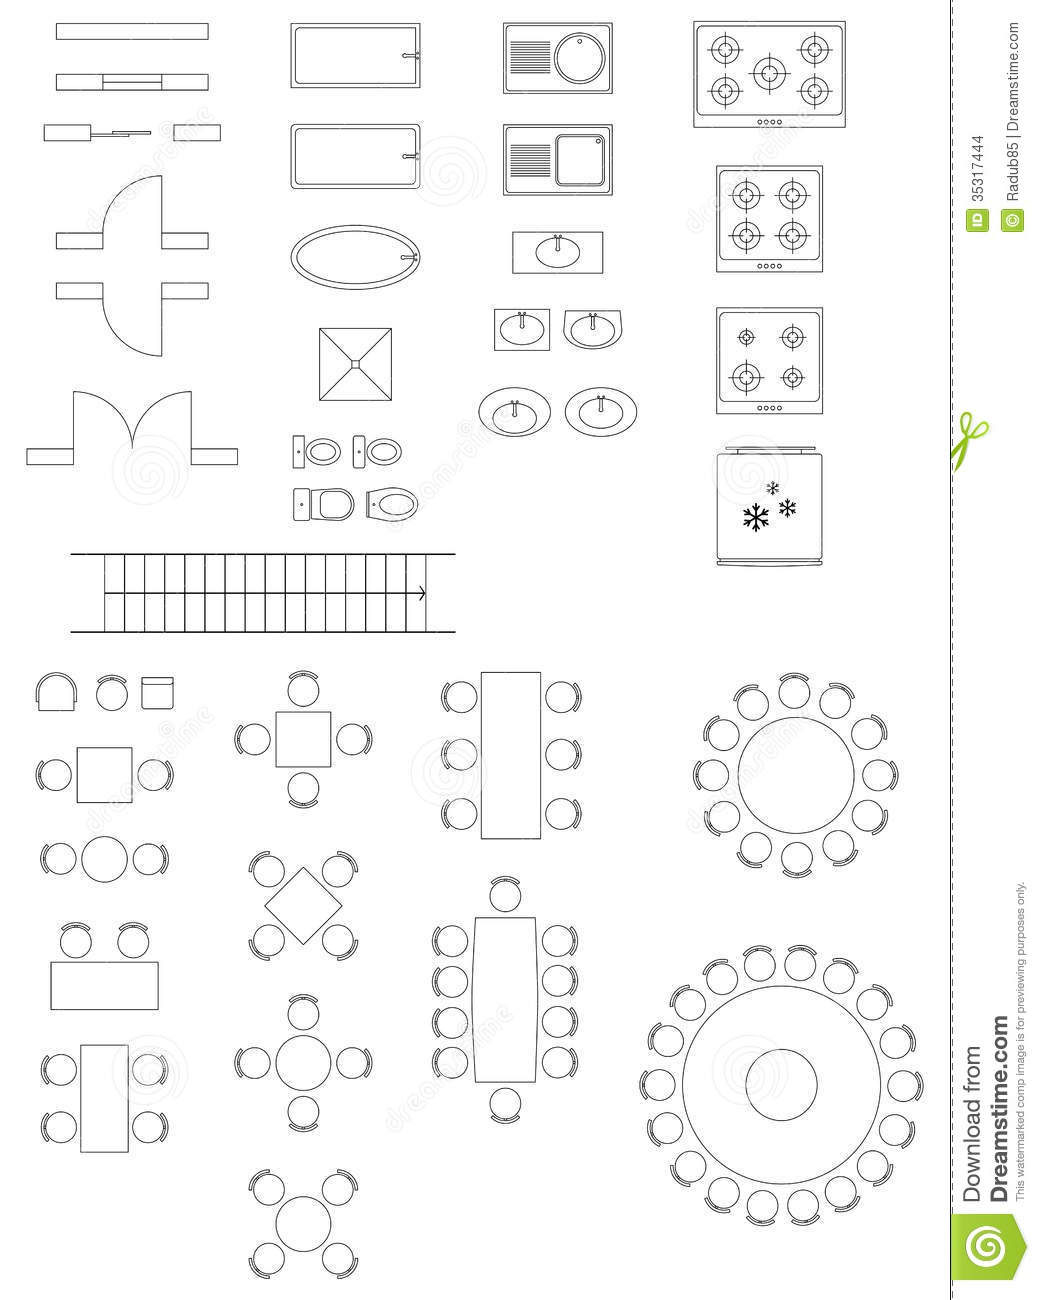 Standard symbols used in architecture plans stock vector standard symbols used in architecture plans malvernweather Images